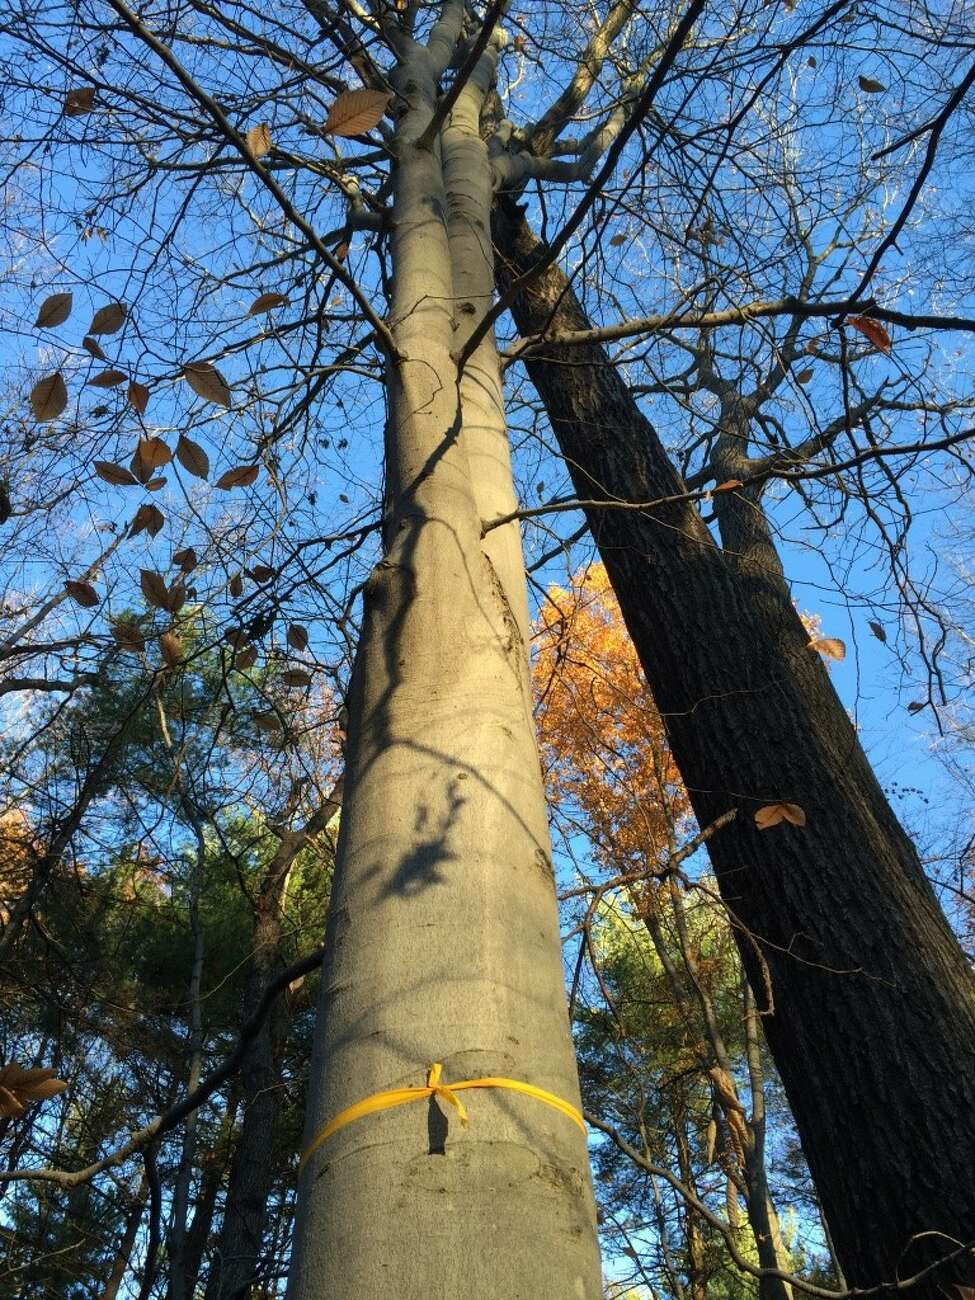 Trees in Kinns Road Park destined for a buzzsaw were marked with yellow and orange ribbons in the first stages of a planned logging operation. Some were marked with the words